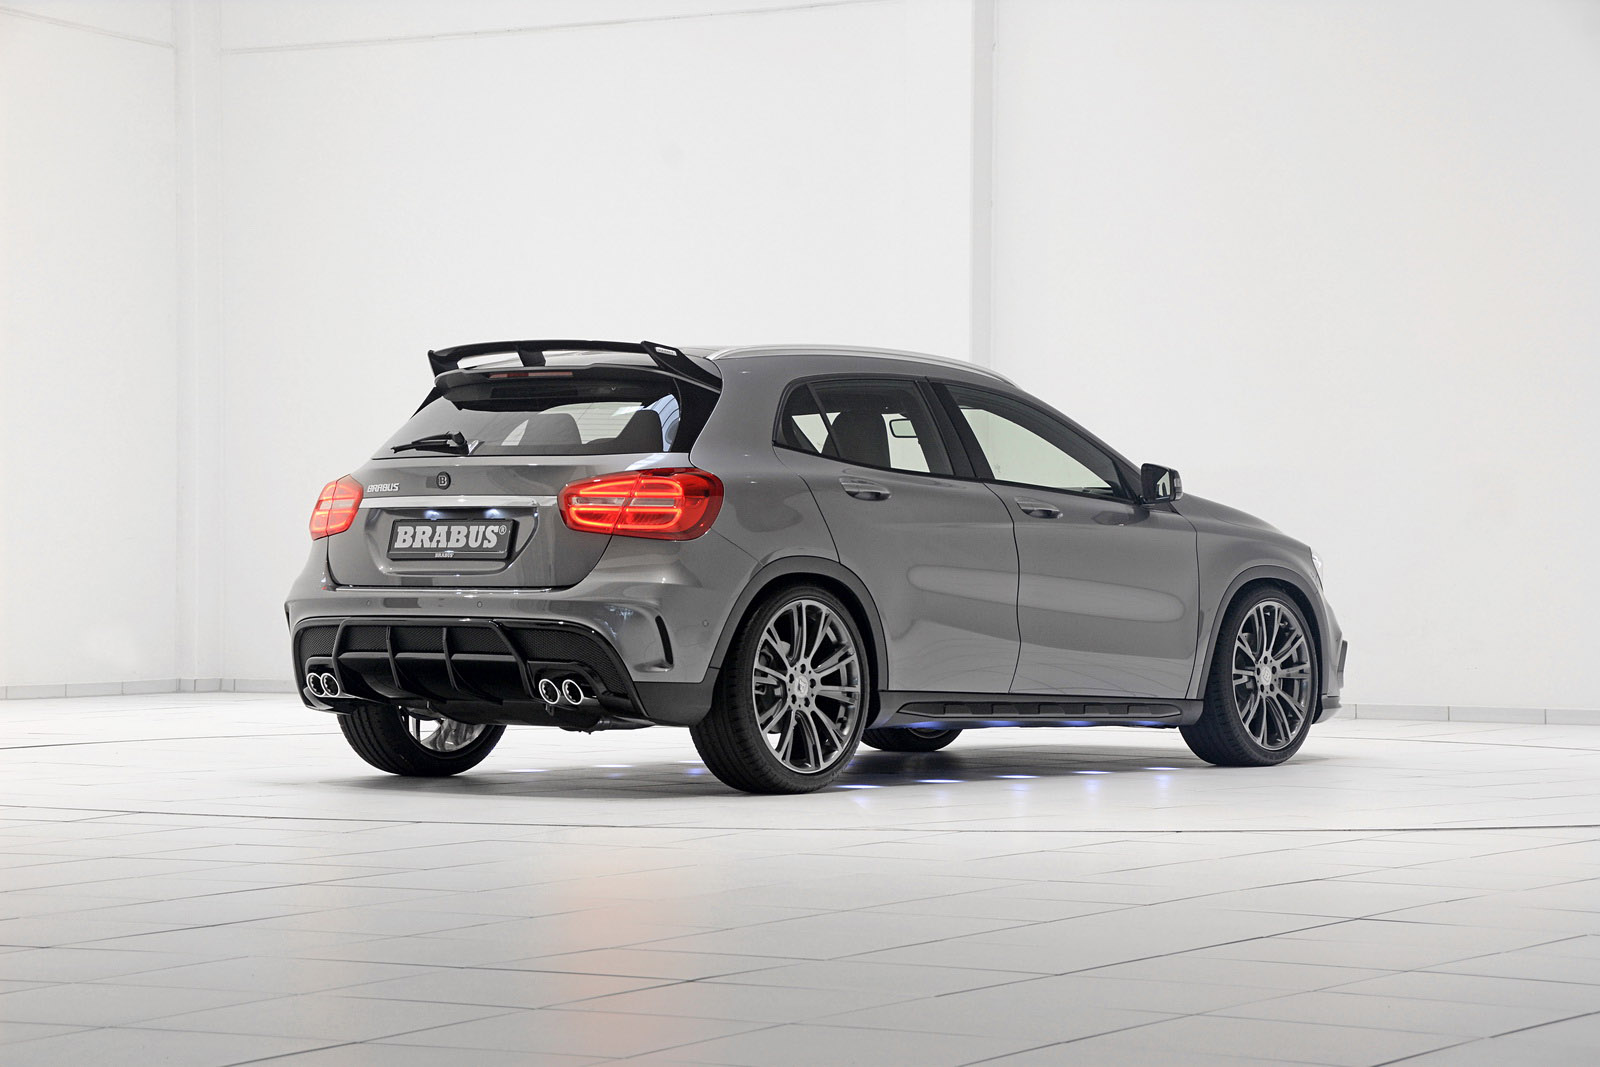 mercedes benz gla class amg pumped up by brabus. Black Bedroom Furniture Sets. Home Design Ideas